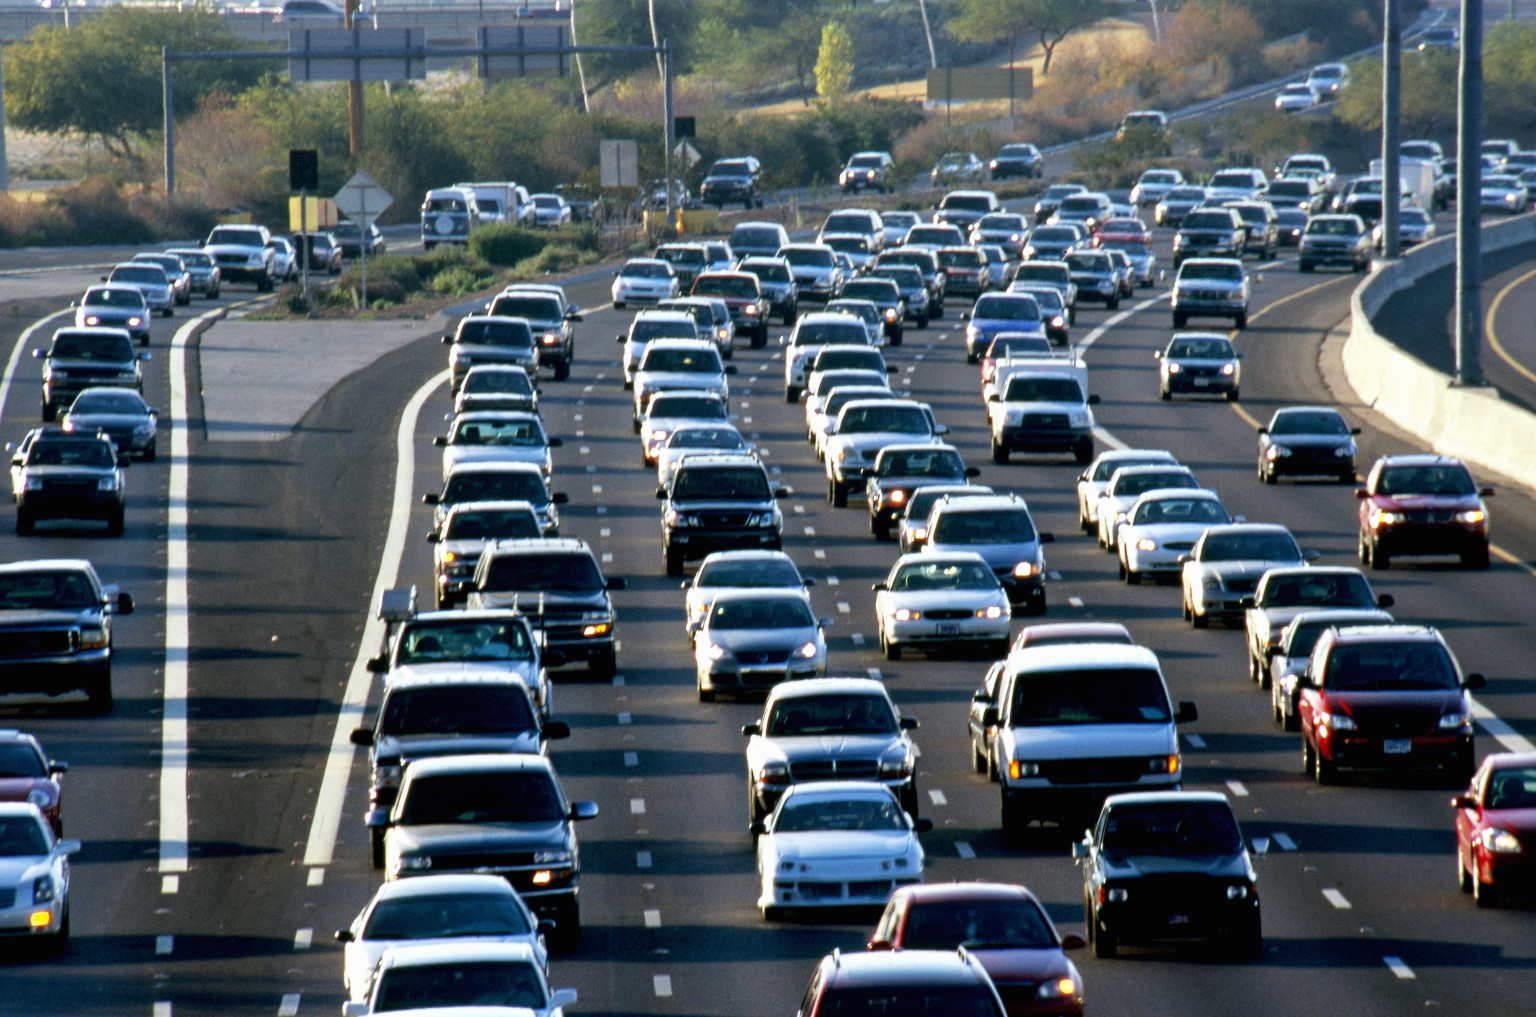 Welcome to the Exciting World of Traffic Study | HuffPost Traffic